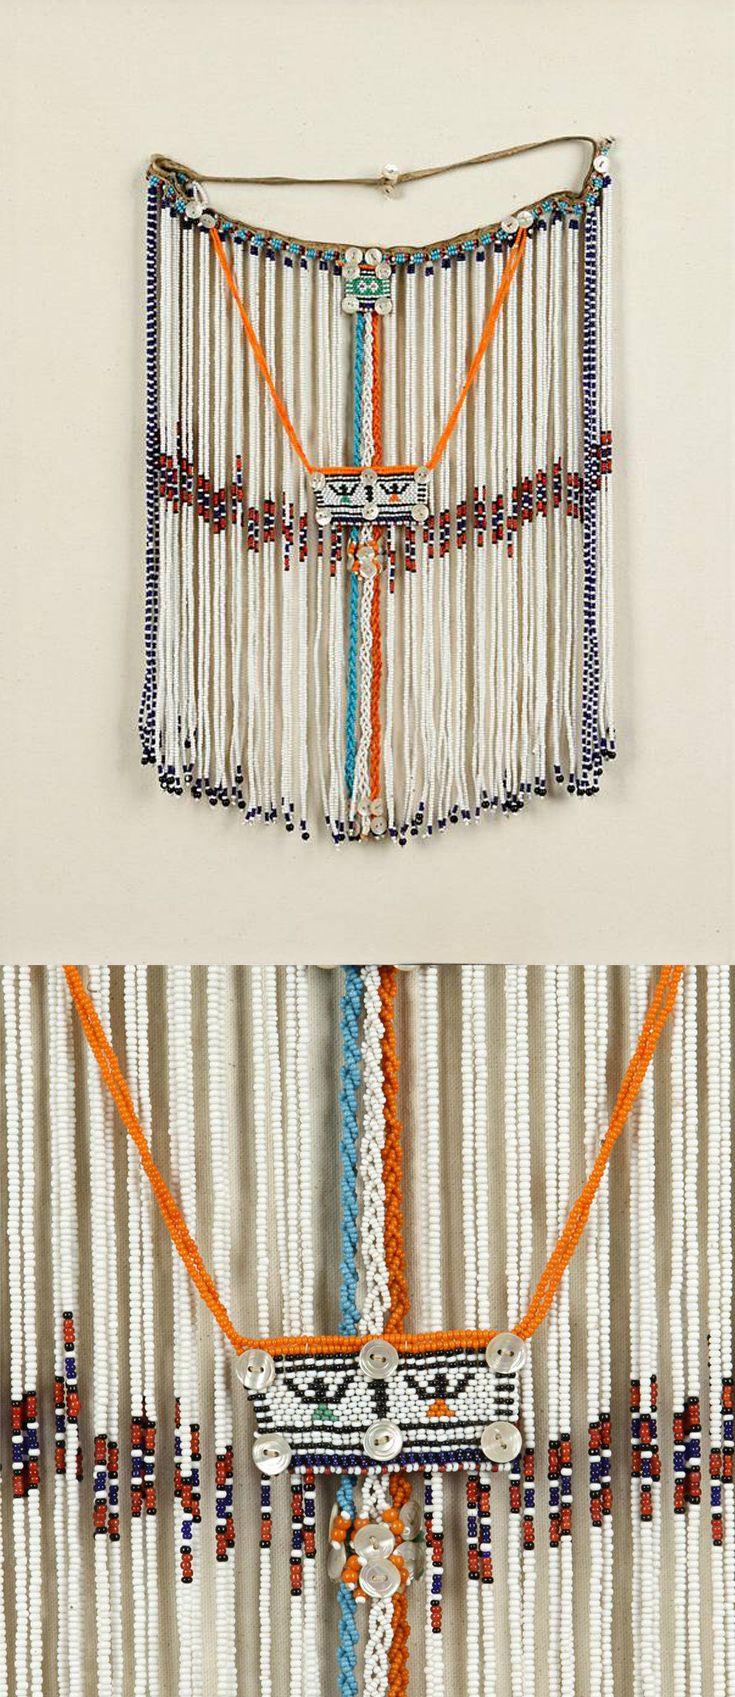 Africa | Wedding veil from the Xhosa people of South Africa | Cloth, glass beads, buttons | 20th century